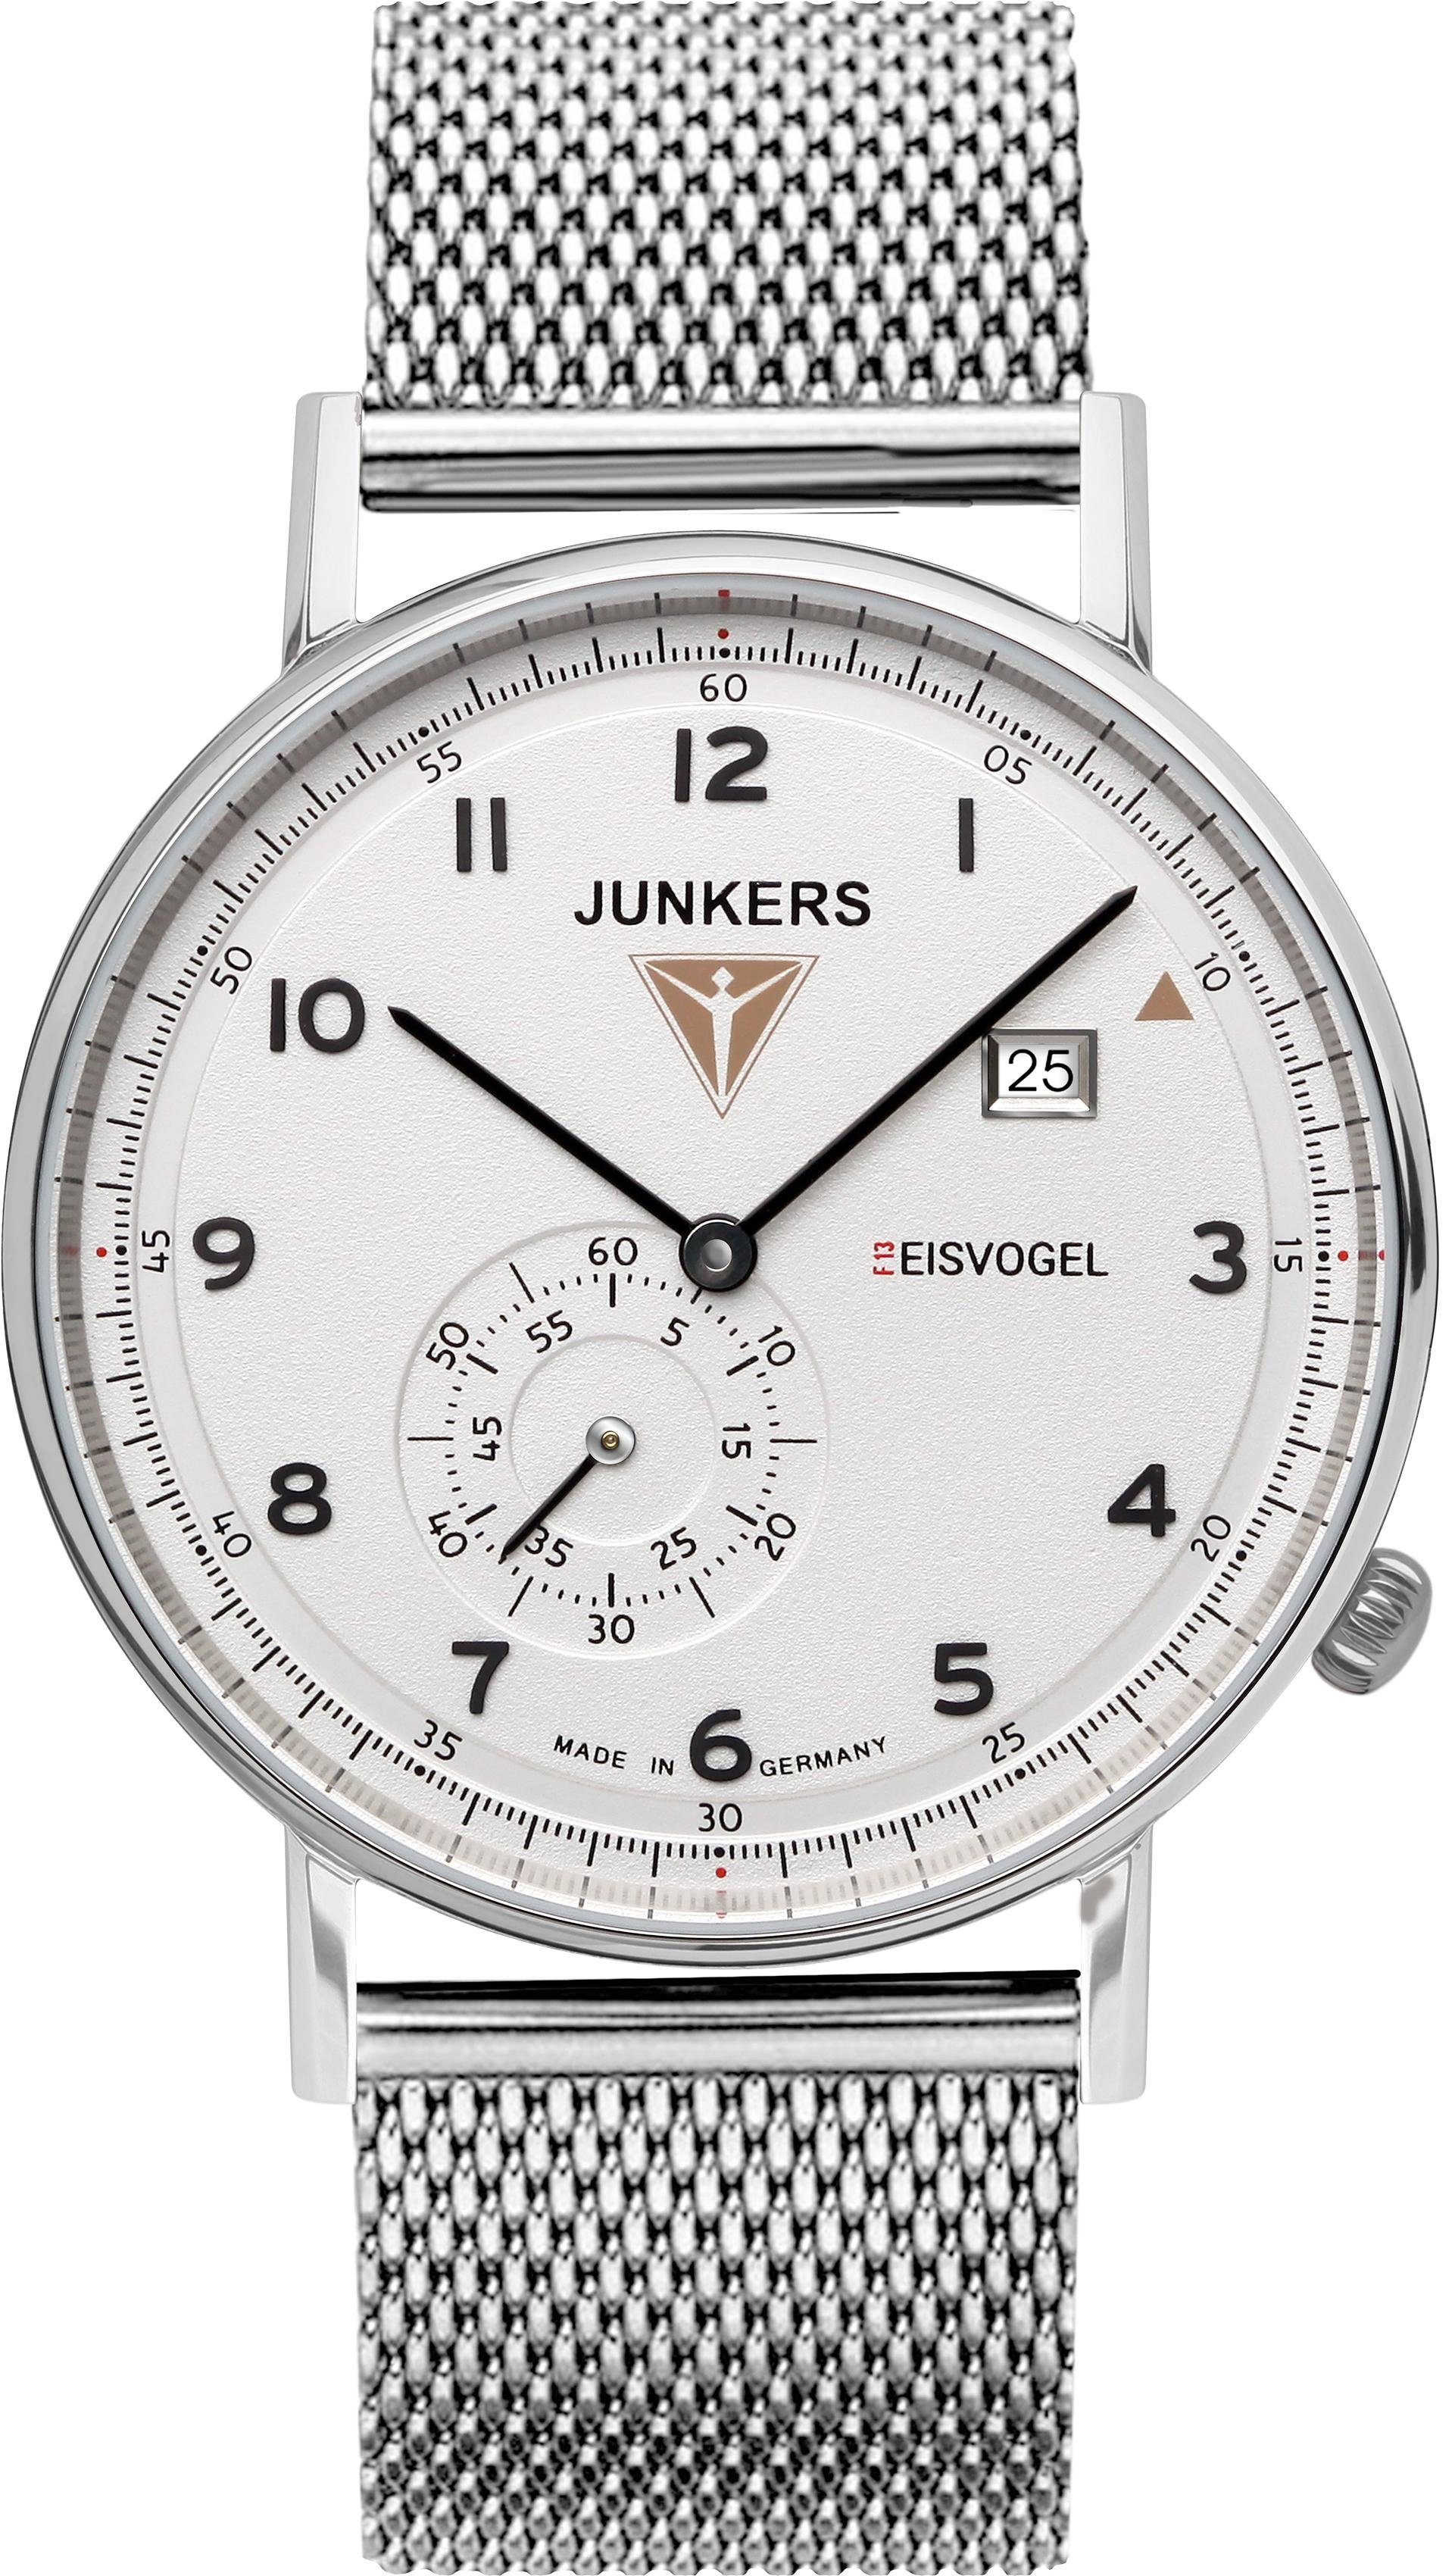 Junkers-Uhren Quarzuhr »Eisvogel, 6730-M-1« Made in Germany